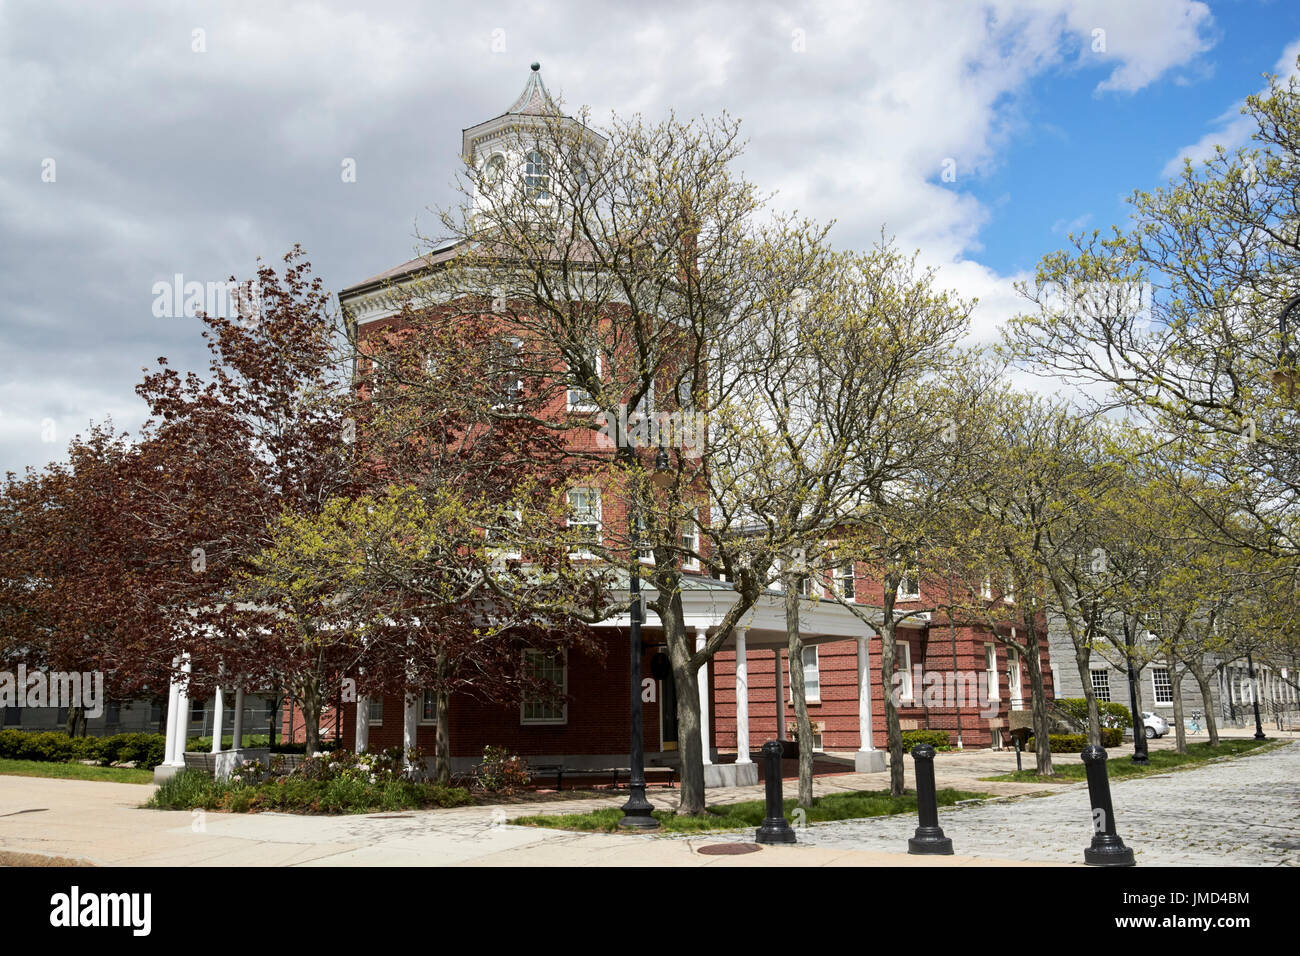 The muster house Charlestown navy yard Boston USA - Stock Image